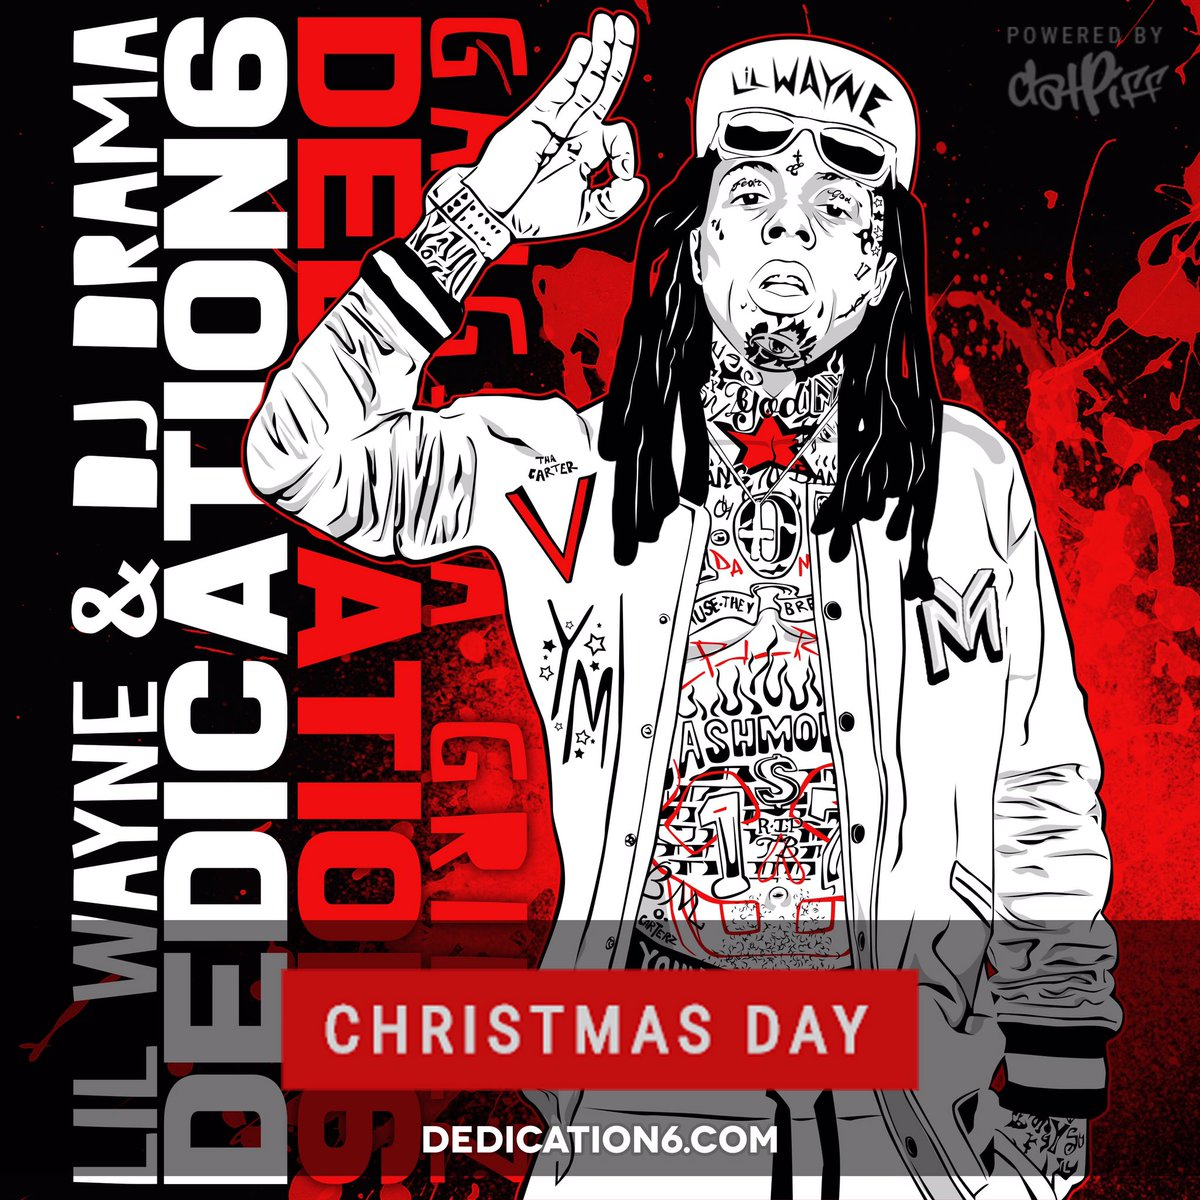 It's time! Sign up for updates and music before drop date! To My fans, I do this for y'all! #D6 MERRY CHRISTMAS